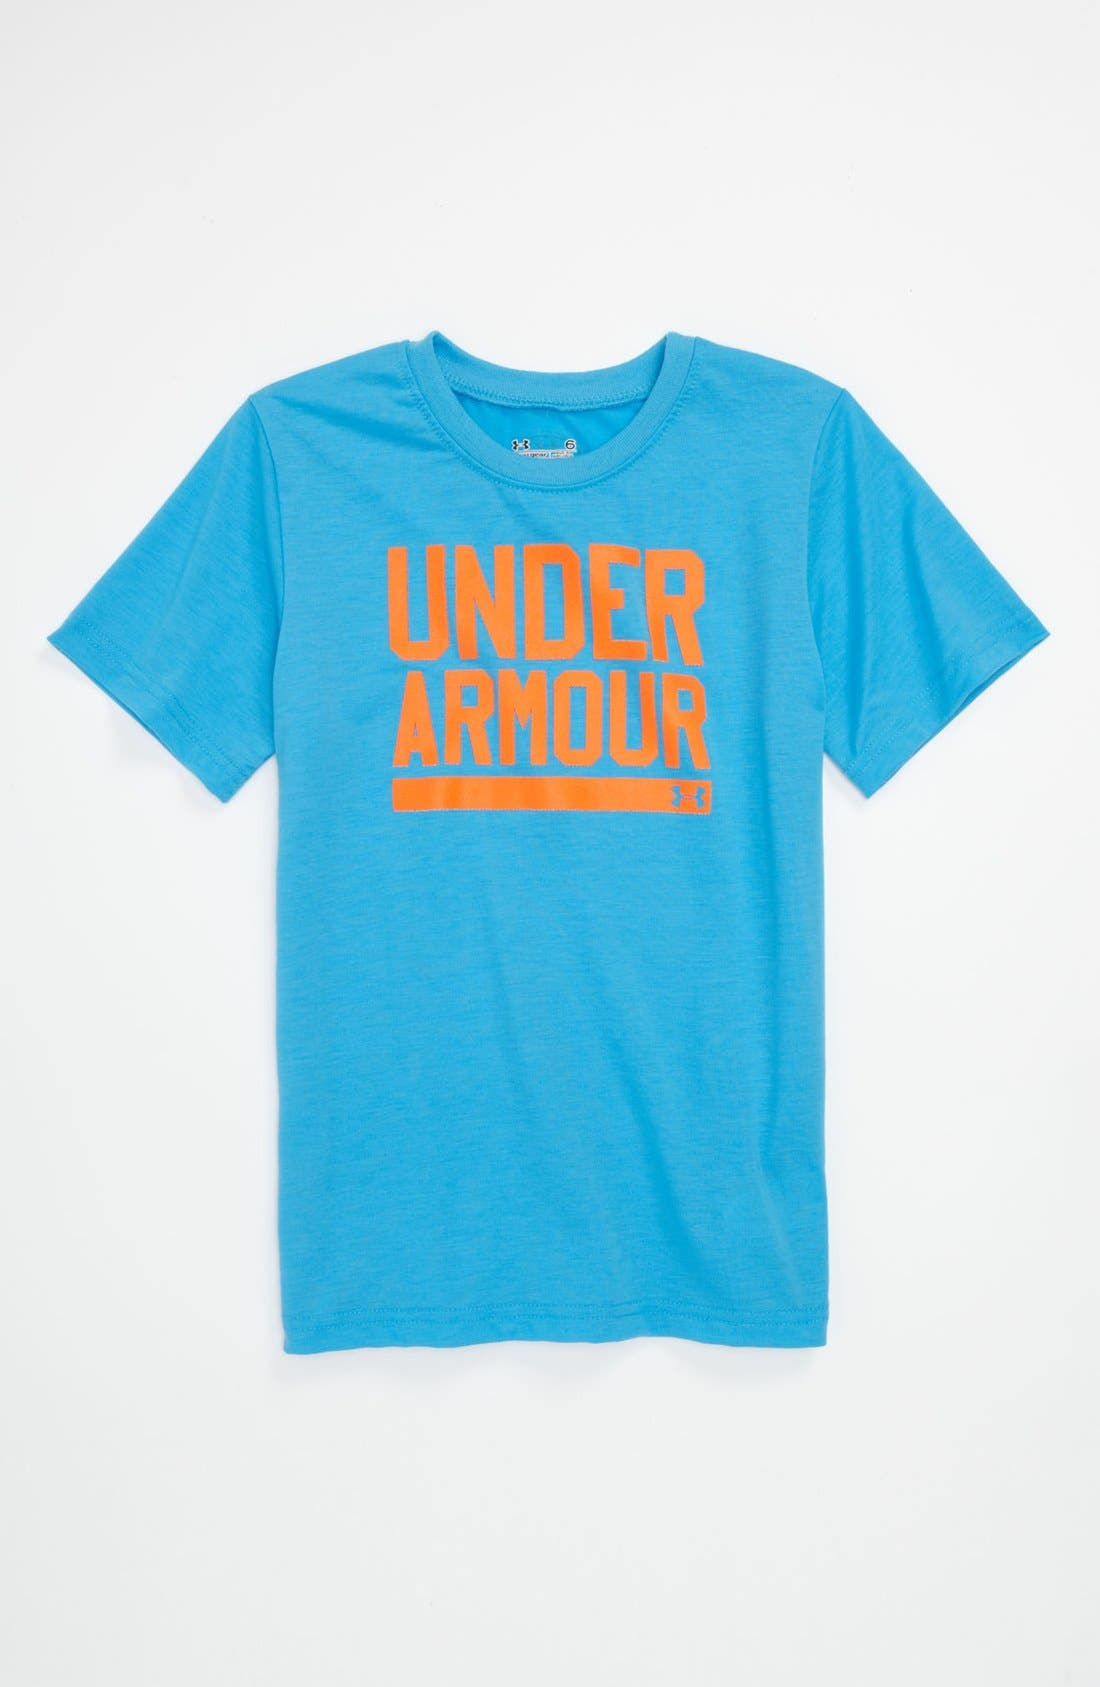 Main Image - Under Armour 'Branded' T-Shirt (Little Boys)